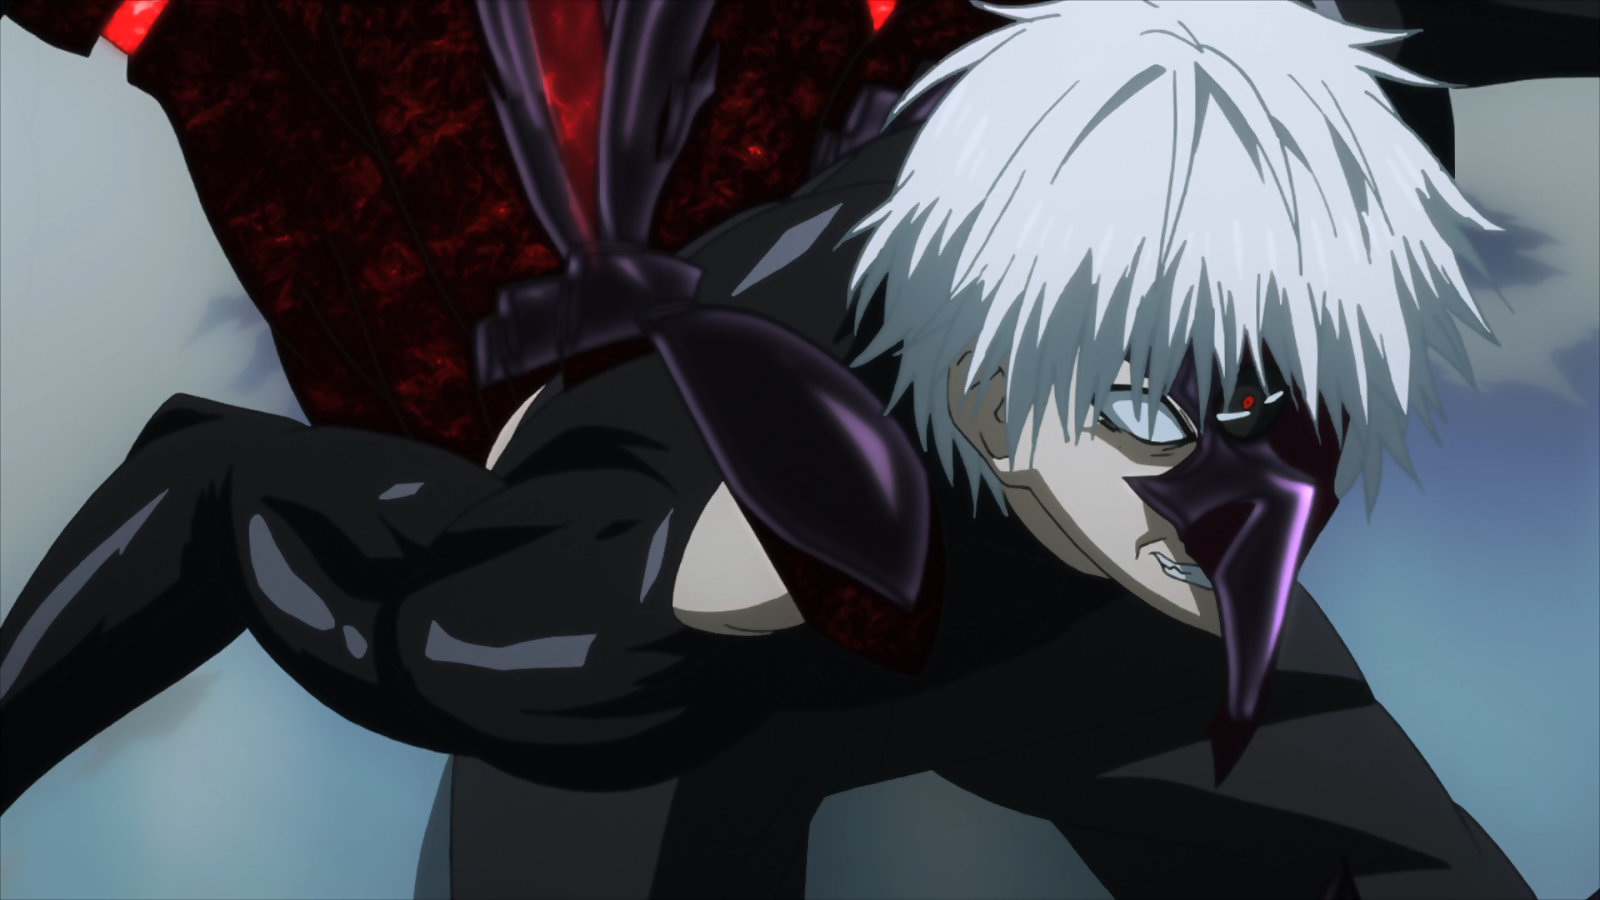 Free Ken Kaneki High Quality Wallpaper ID150099 For Hd 1600x900 Desktop